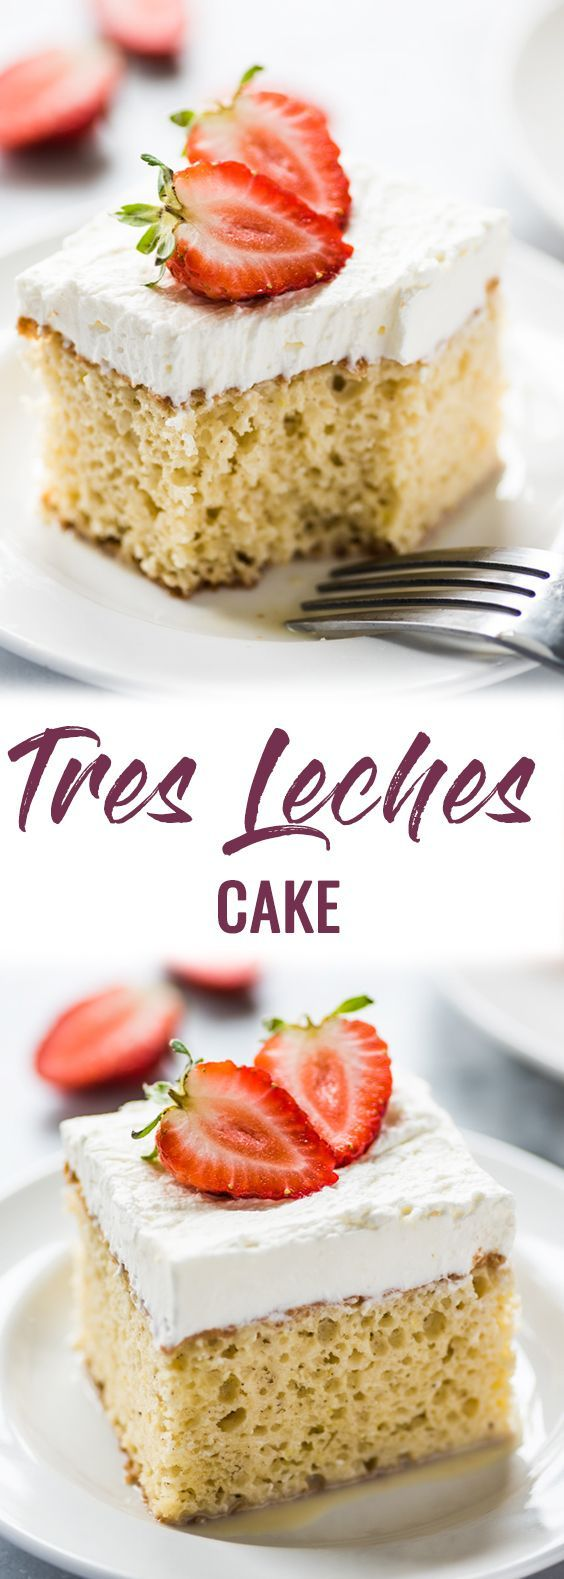 A classic Mexican dessert, this Tres Leches Cake is soaked in a mixture of three milks and topped with whipped cream and strawberries. Perfect for any celebration! #treslechescake #cake #dessert | mexican cake | birthday cake | authentic mexican | sponge cake